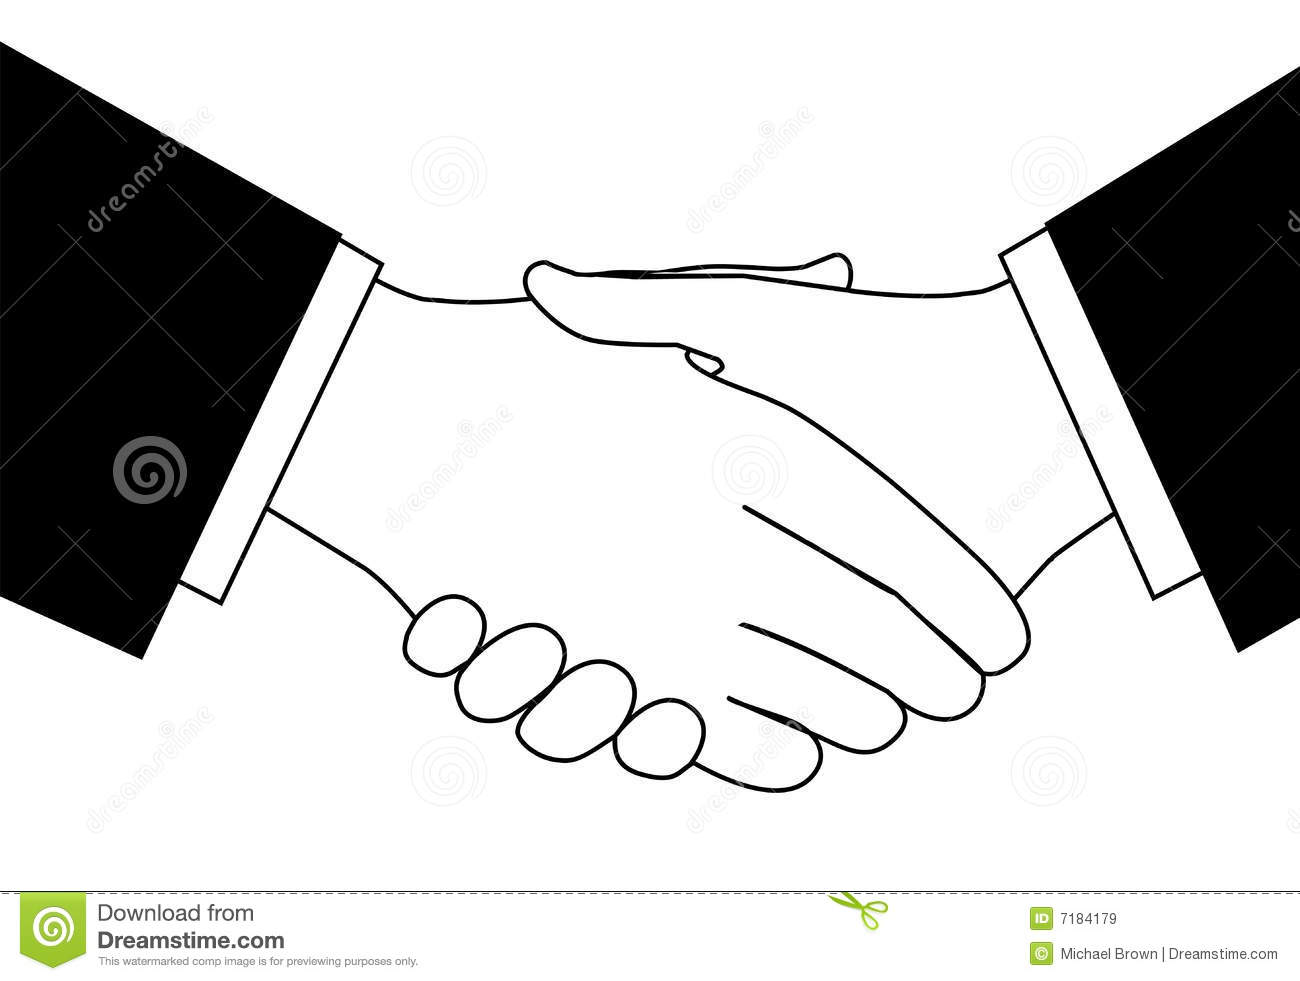 Handshake Clipart Sketch Of Business People Shaking Hands To Meet Or